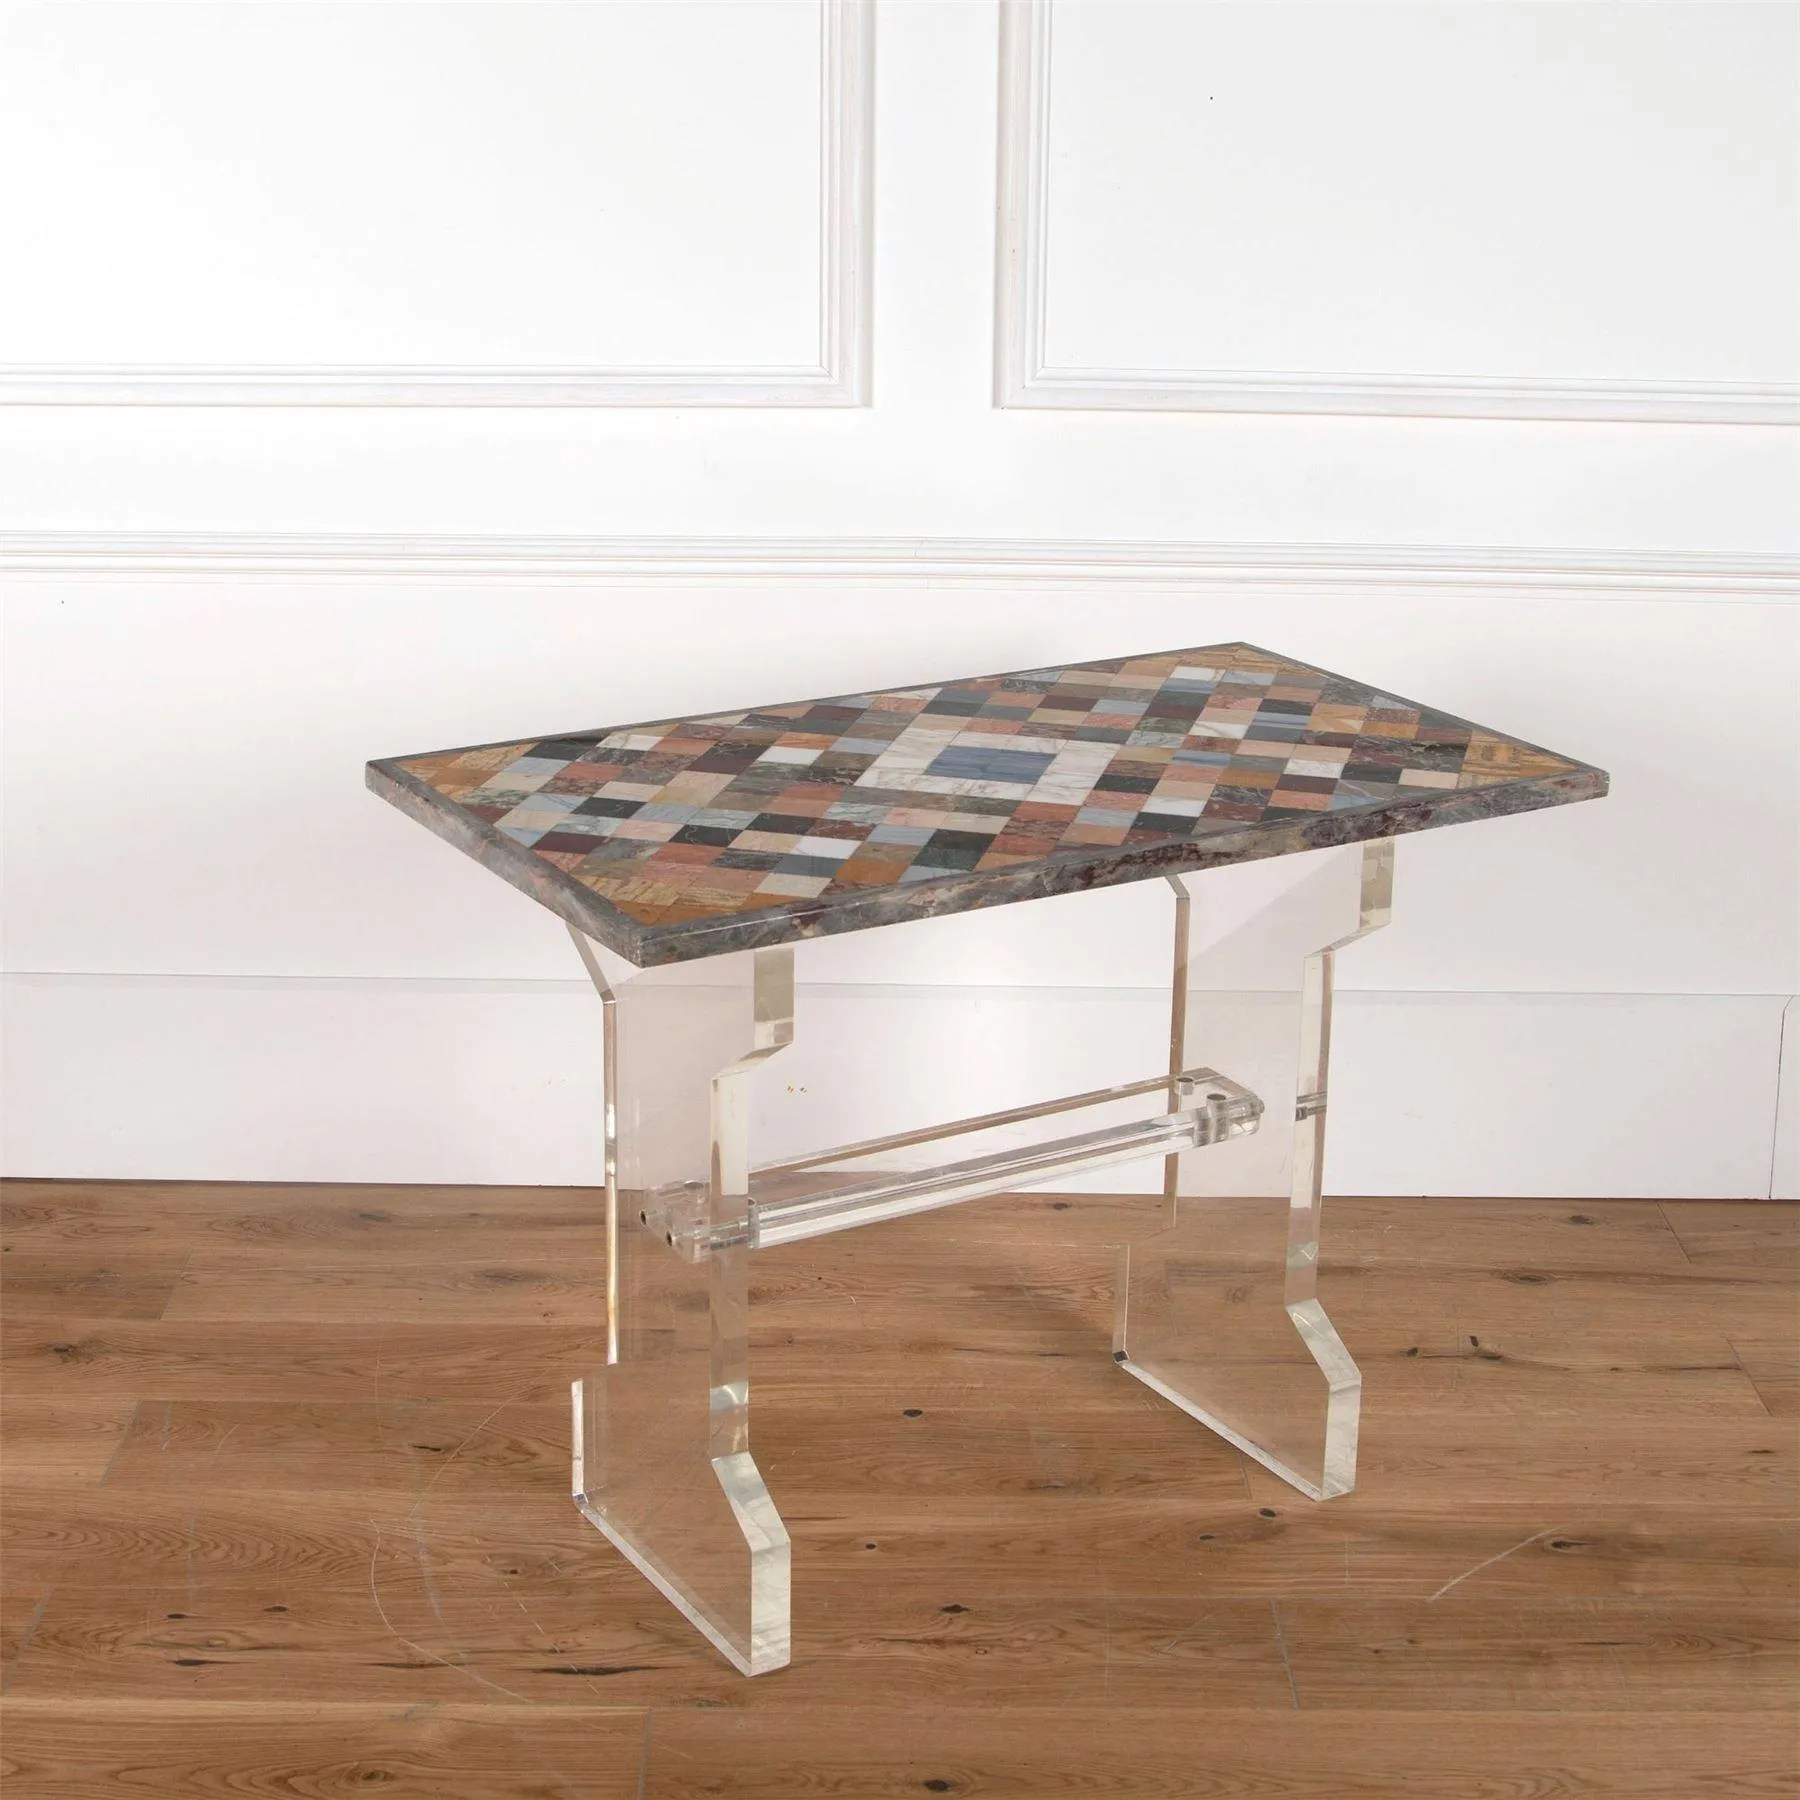 20th century italian multi marble topped side table with perspex base